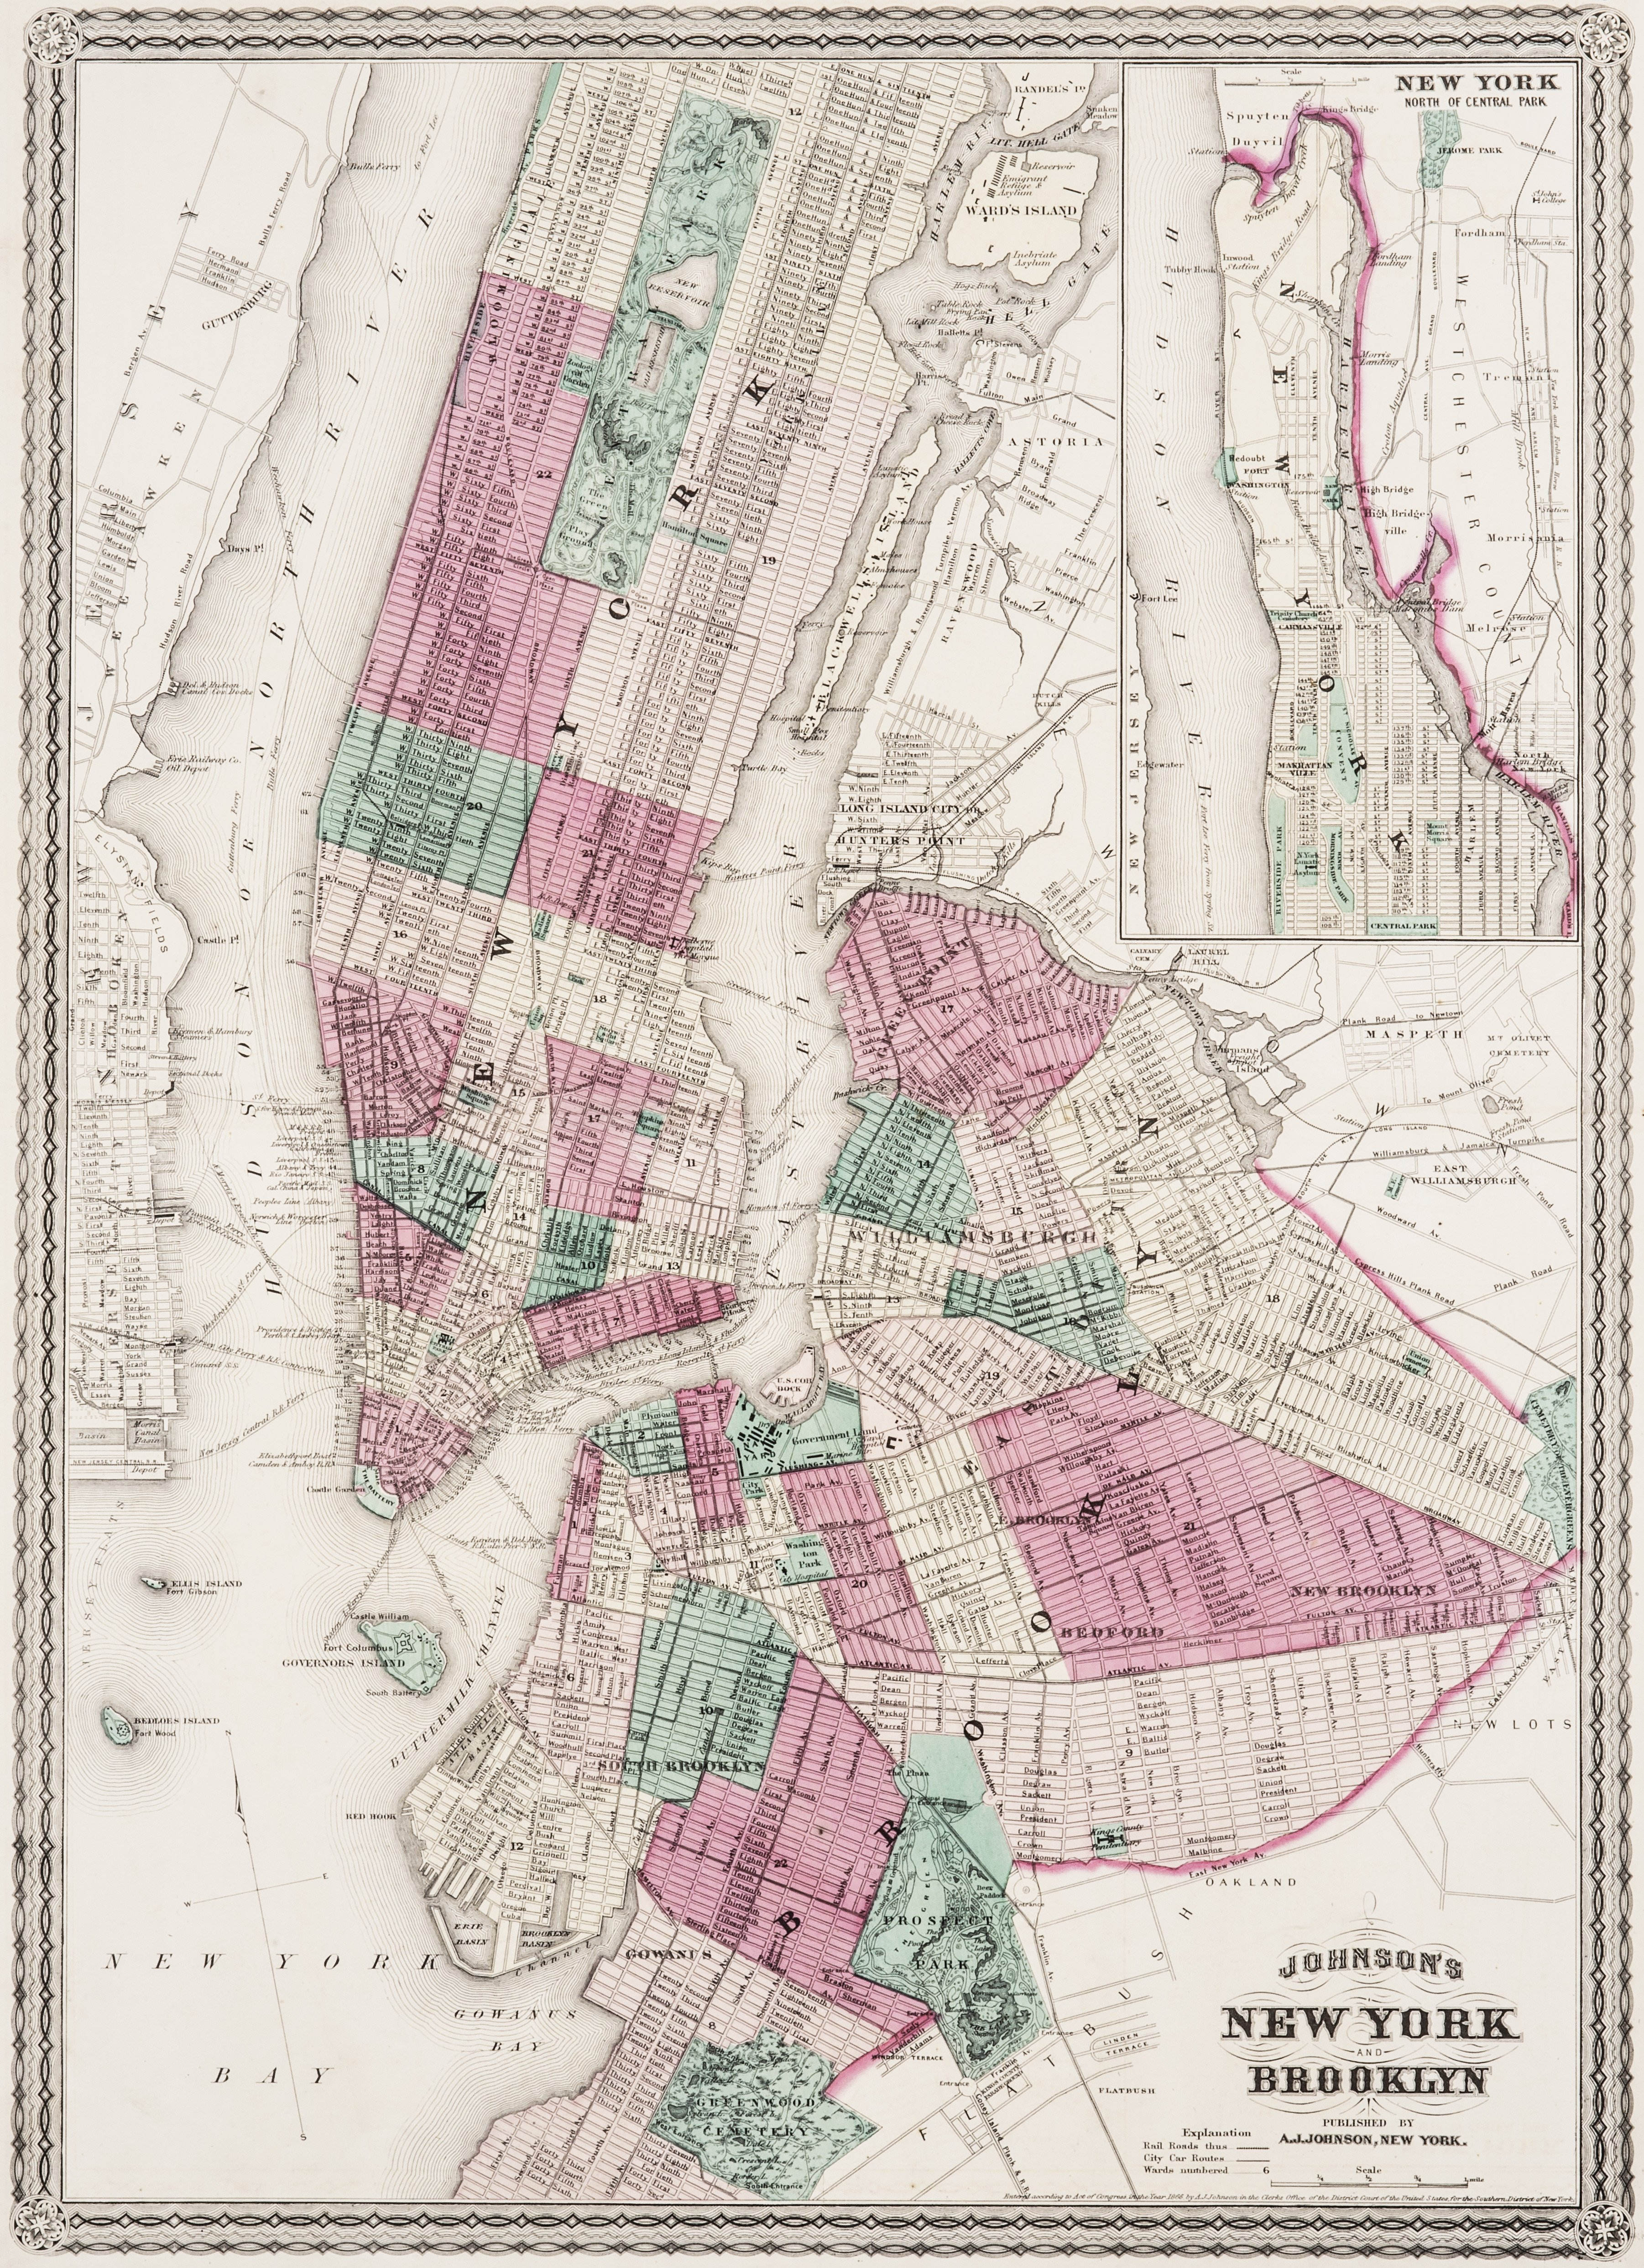 An Antique A.J. Johnsons Map Of New York & Brooklyn 1866